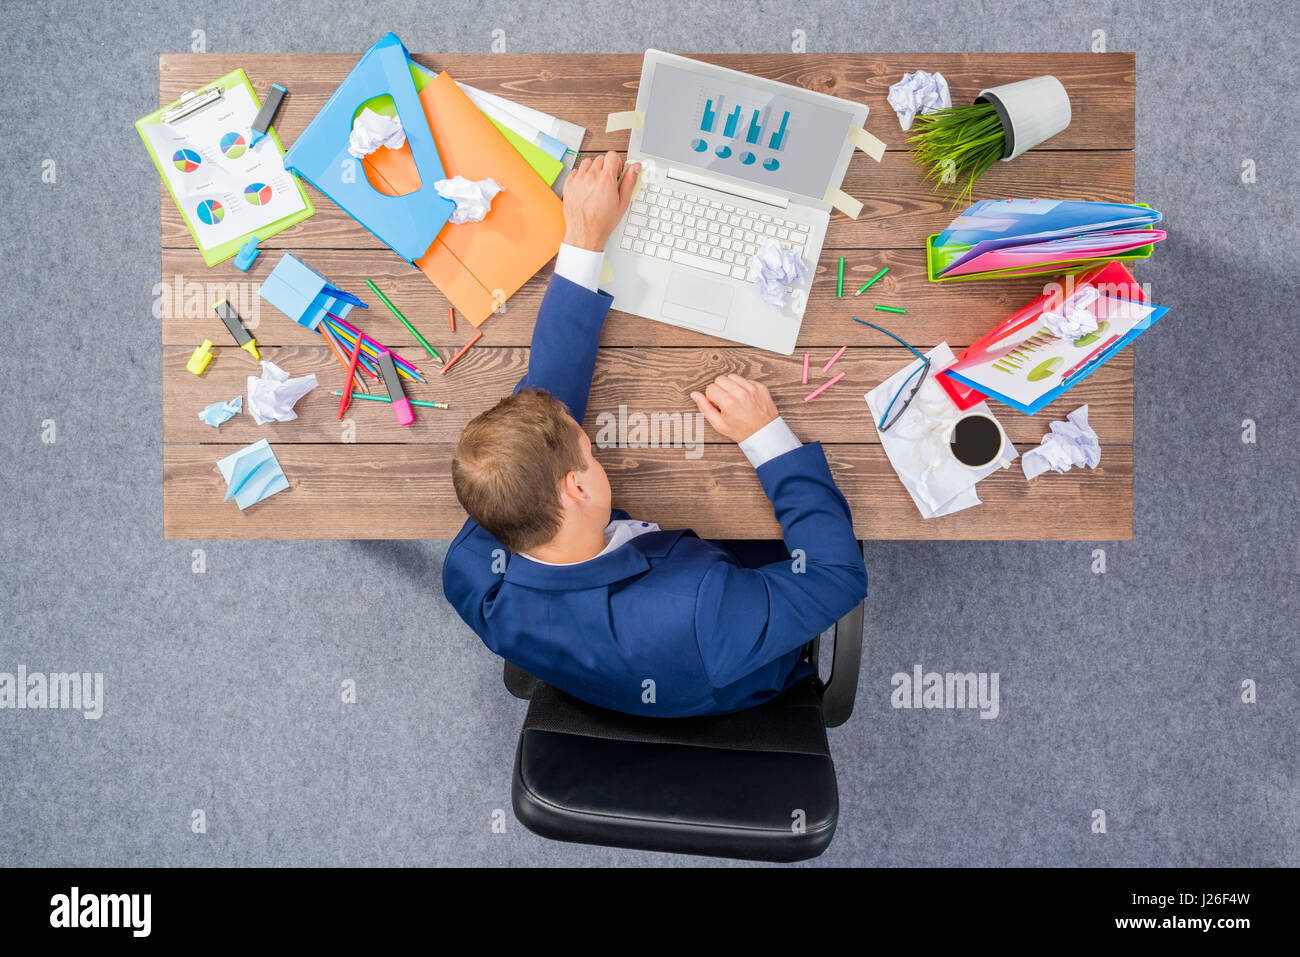 Overworked businessman - Stock Image